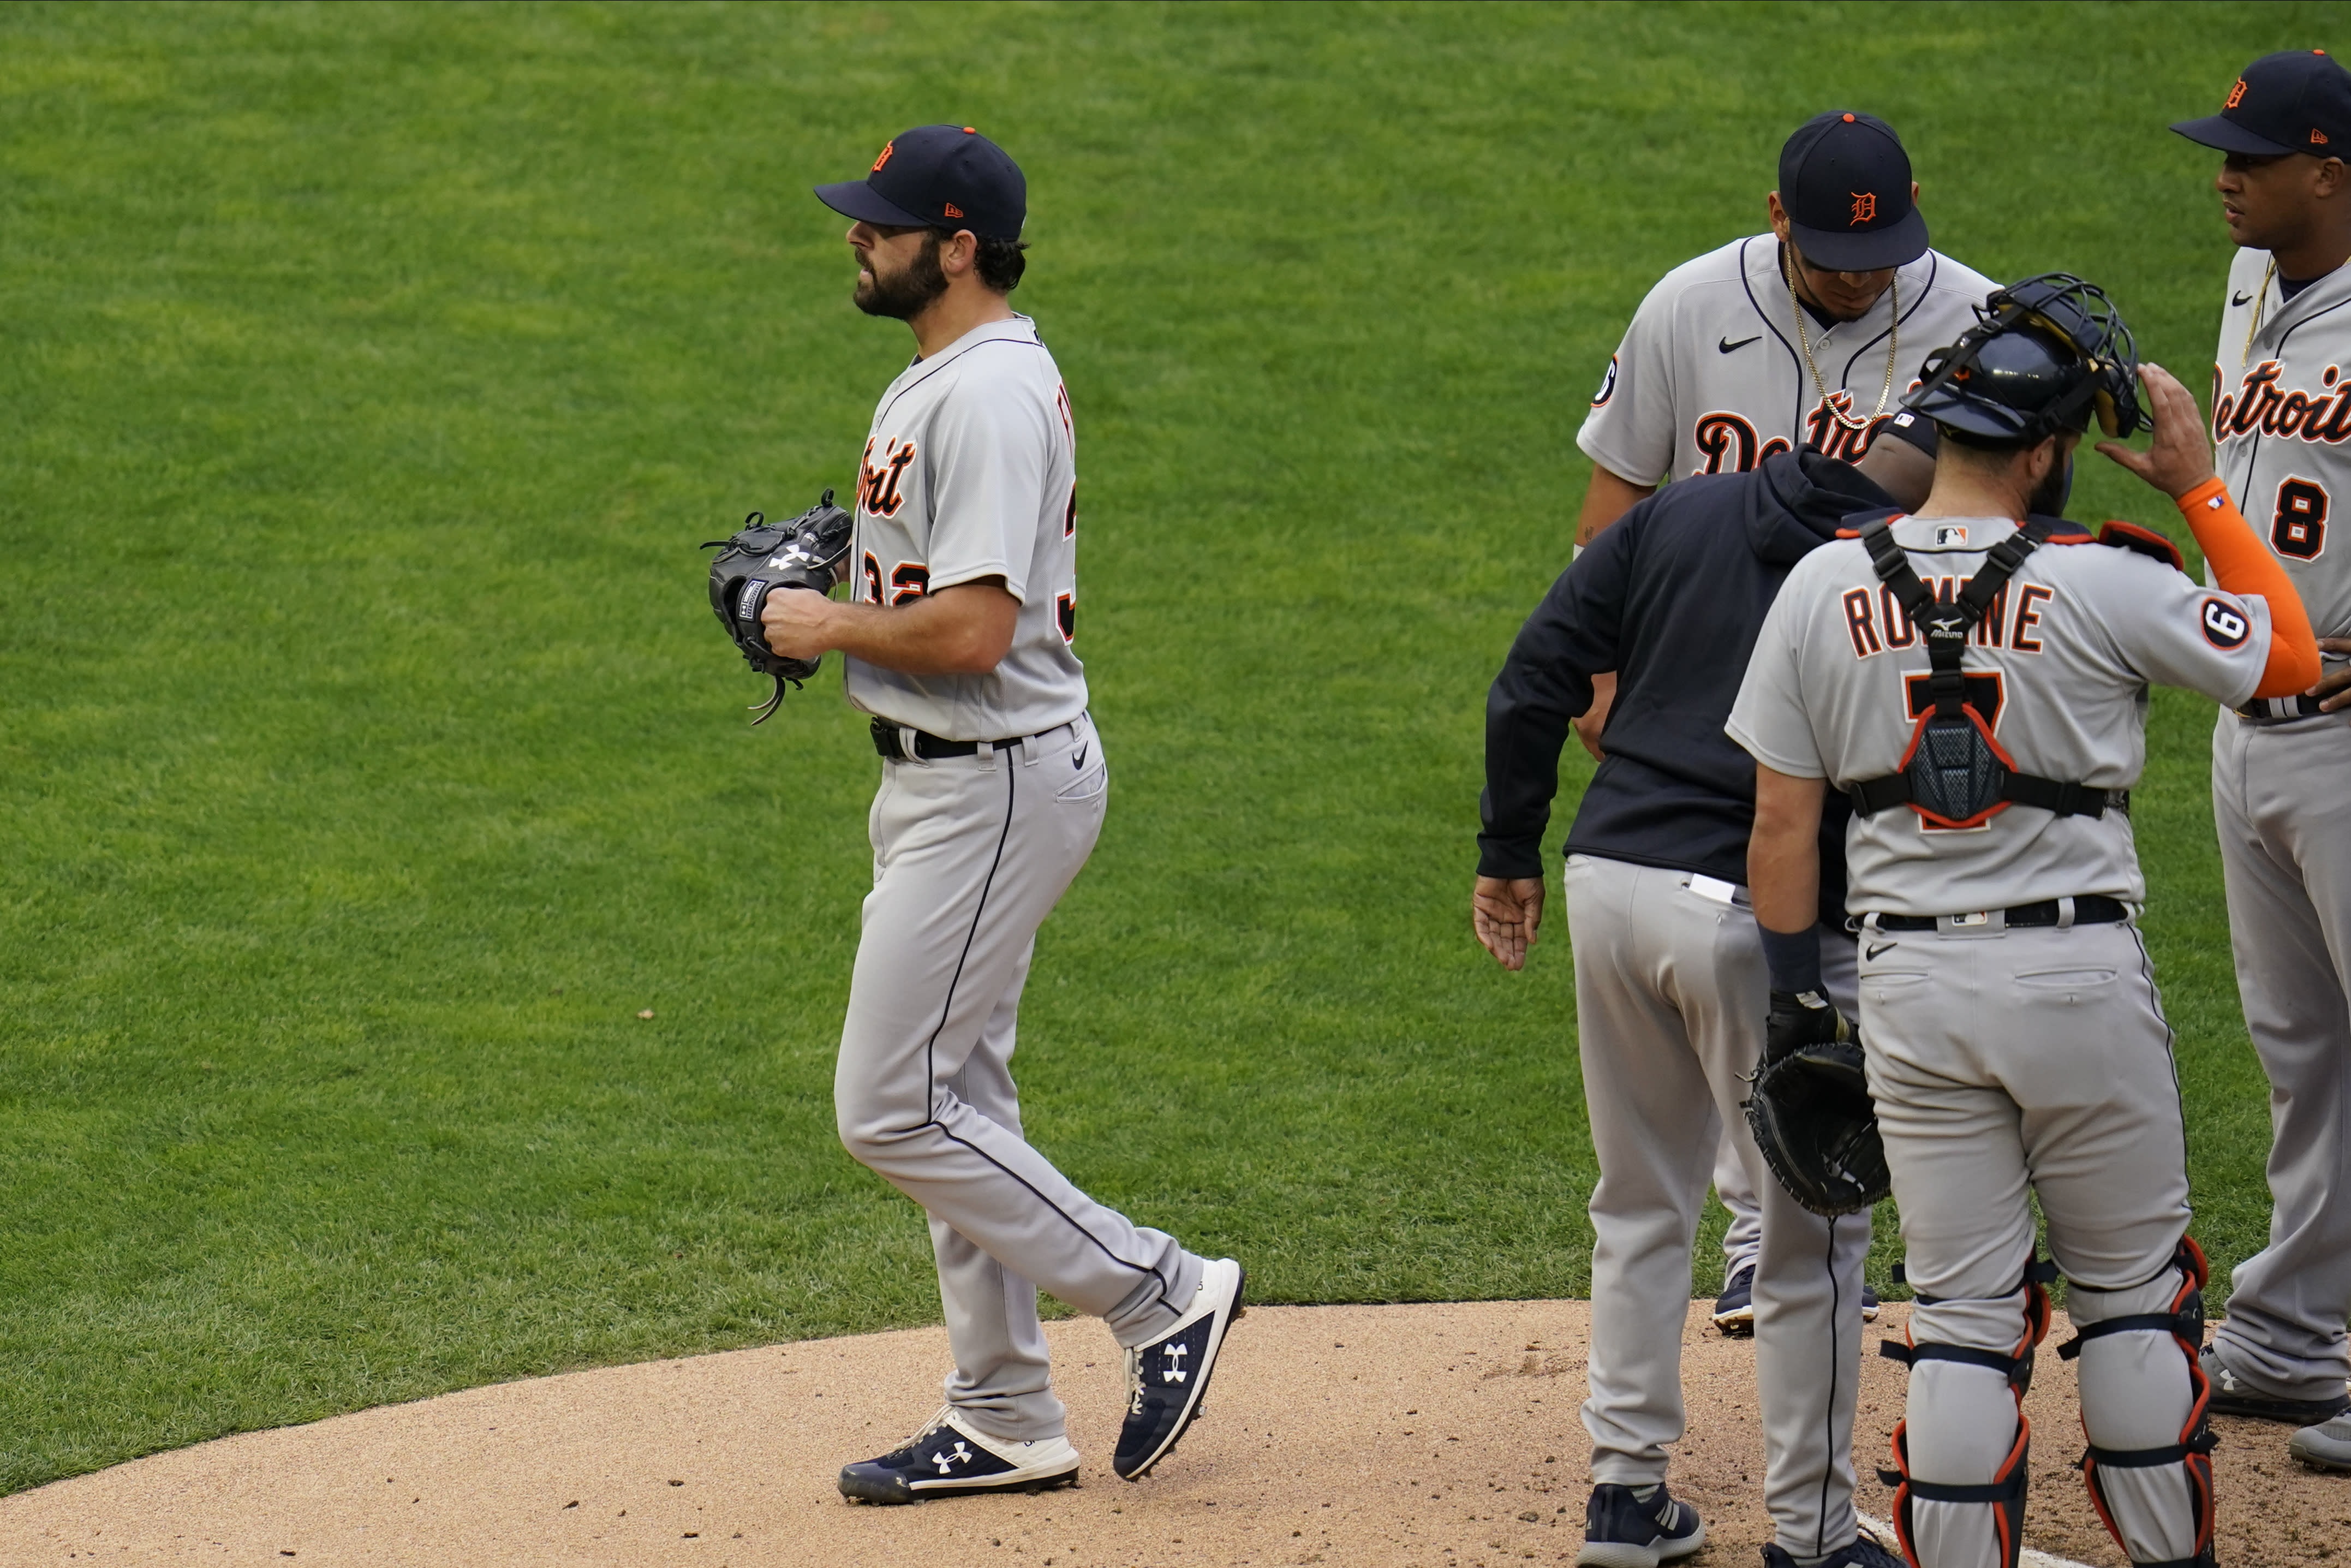 Detroit Tigers pitcher Michael Fulmer, left, leaves in the third inning after he was pulled in a baseball game against the Minnesota Twins, Monday, Sept. 7, 2020, in Minneapolis. (AP Photo/Jim Mone)